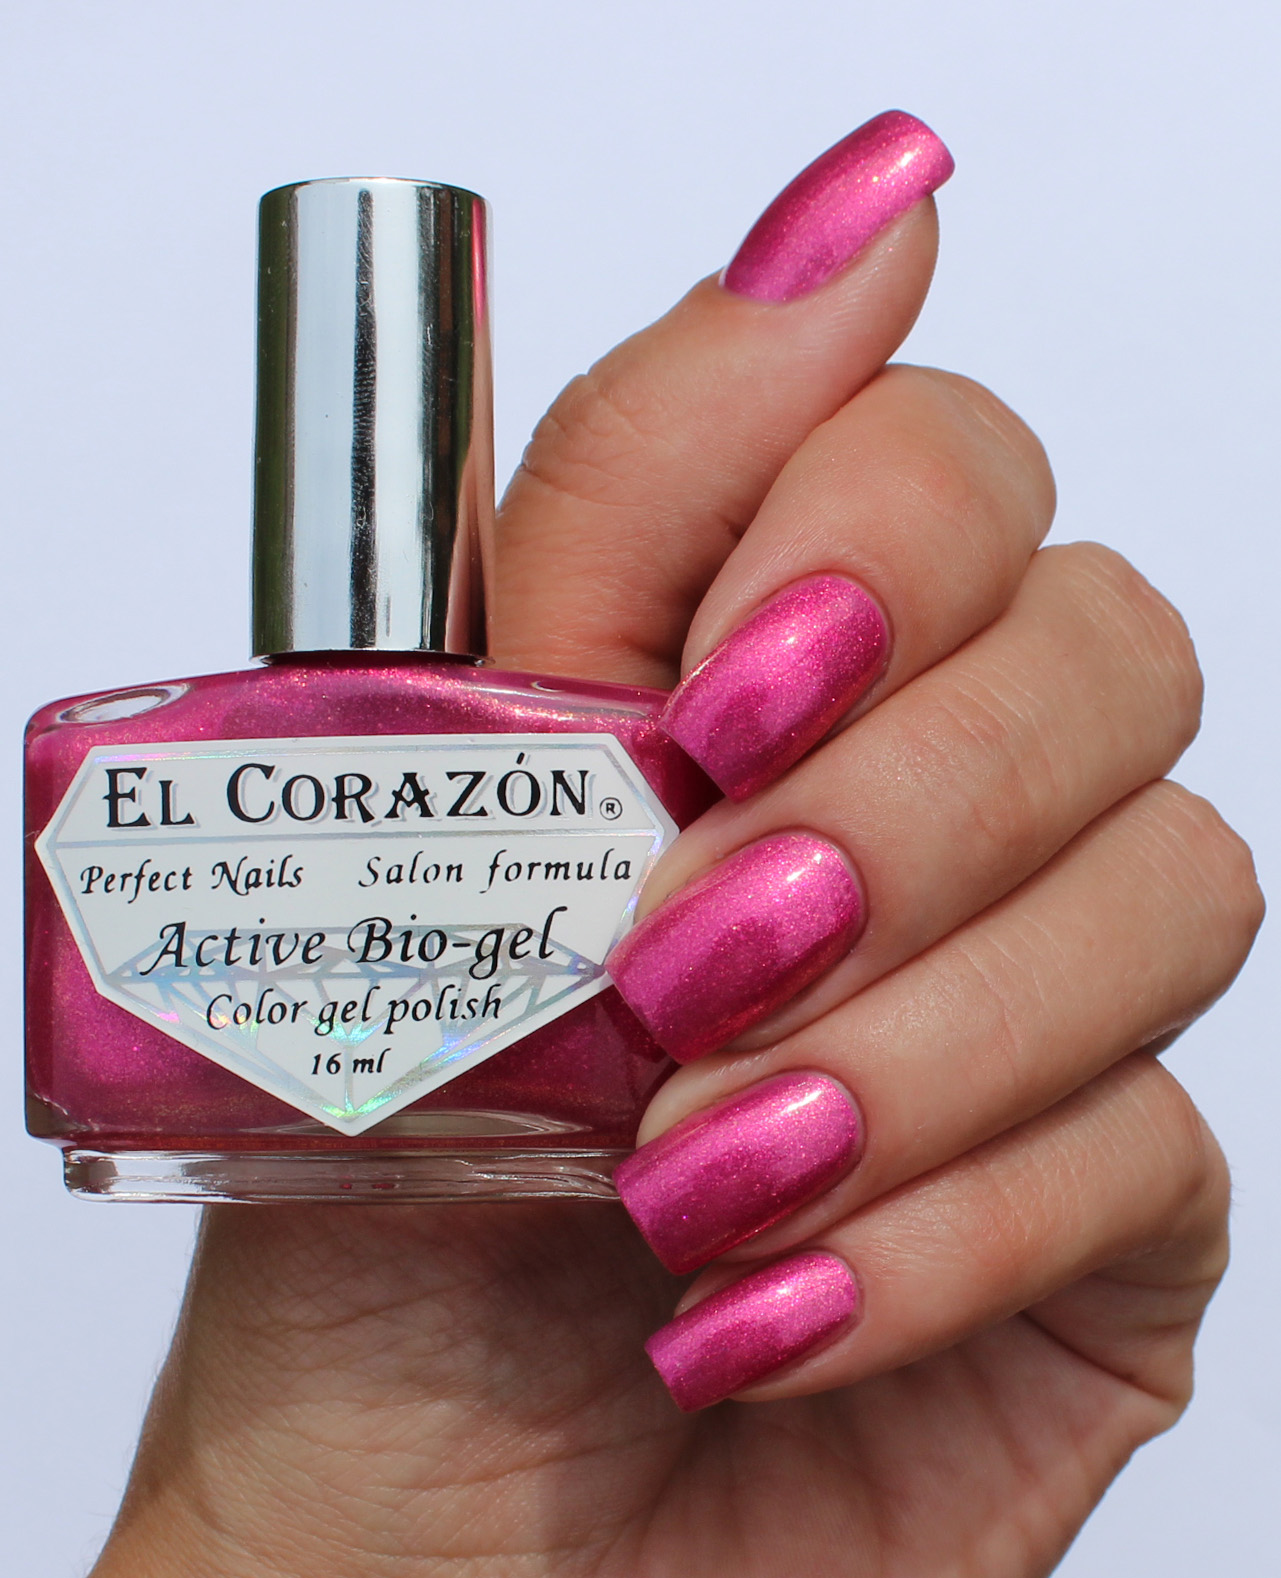 El Corazon Active Bio-gel 423/551 Magic Passion